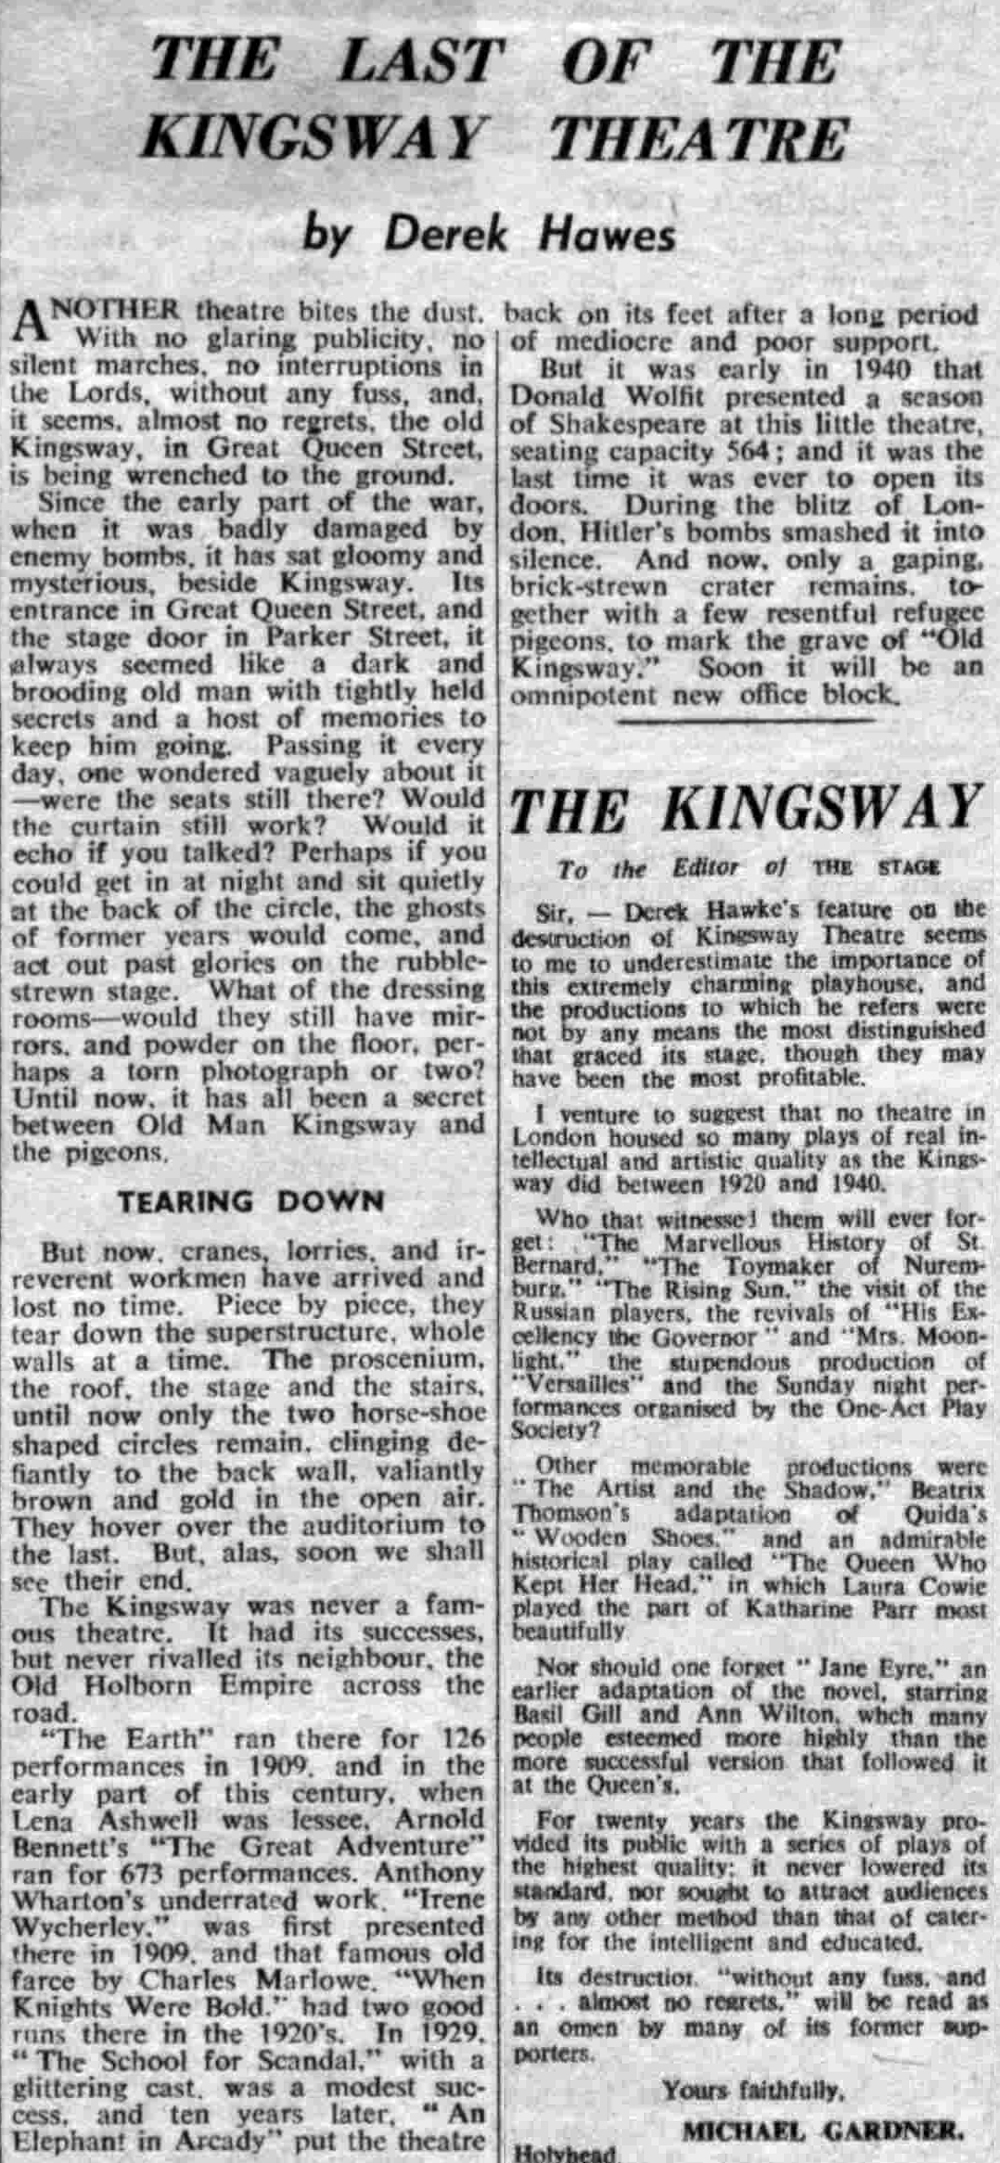 An Article from the Stage Newspaper of the 22nd of January 1959 on the demolition of the Kingsway Theatre, and a letter in response published in the Stage, 19th of February 1959 .